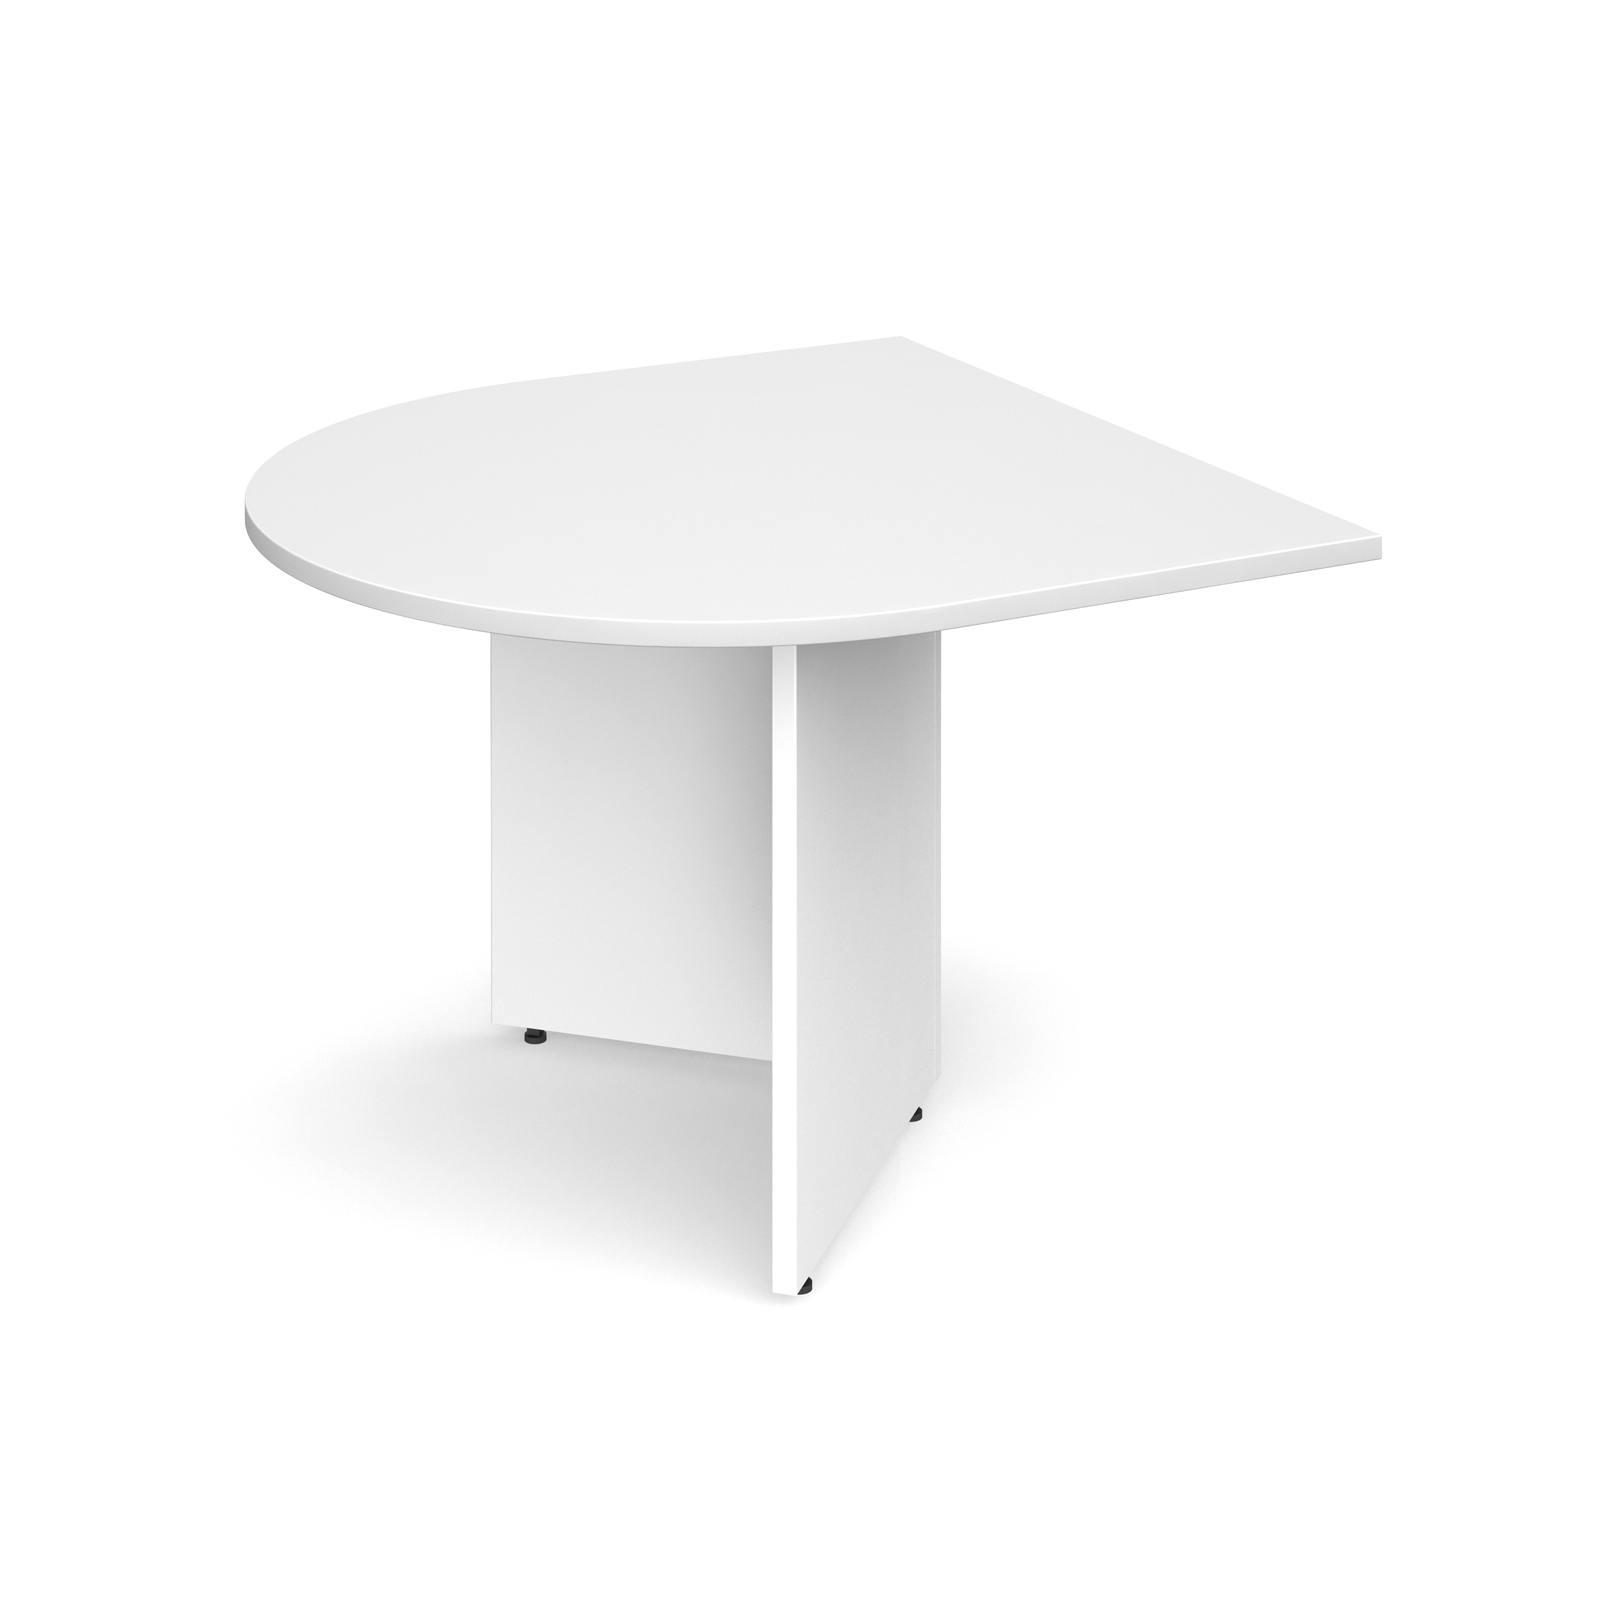 Dams Arrow Head Boardroom Table - Extension Table